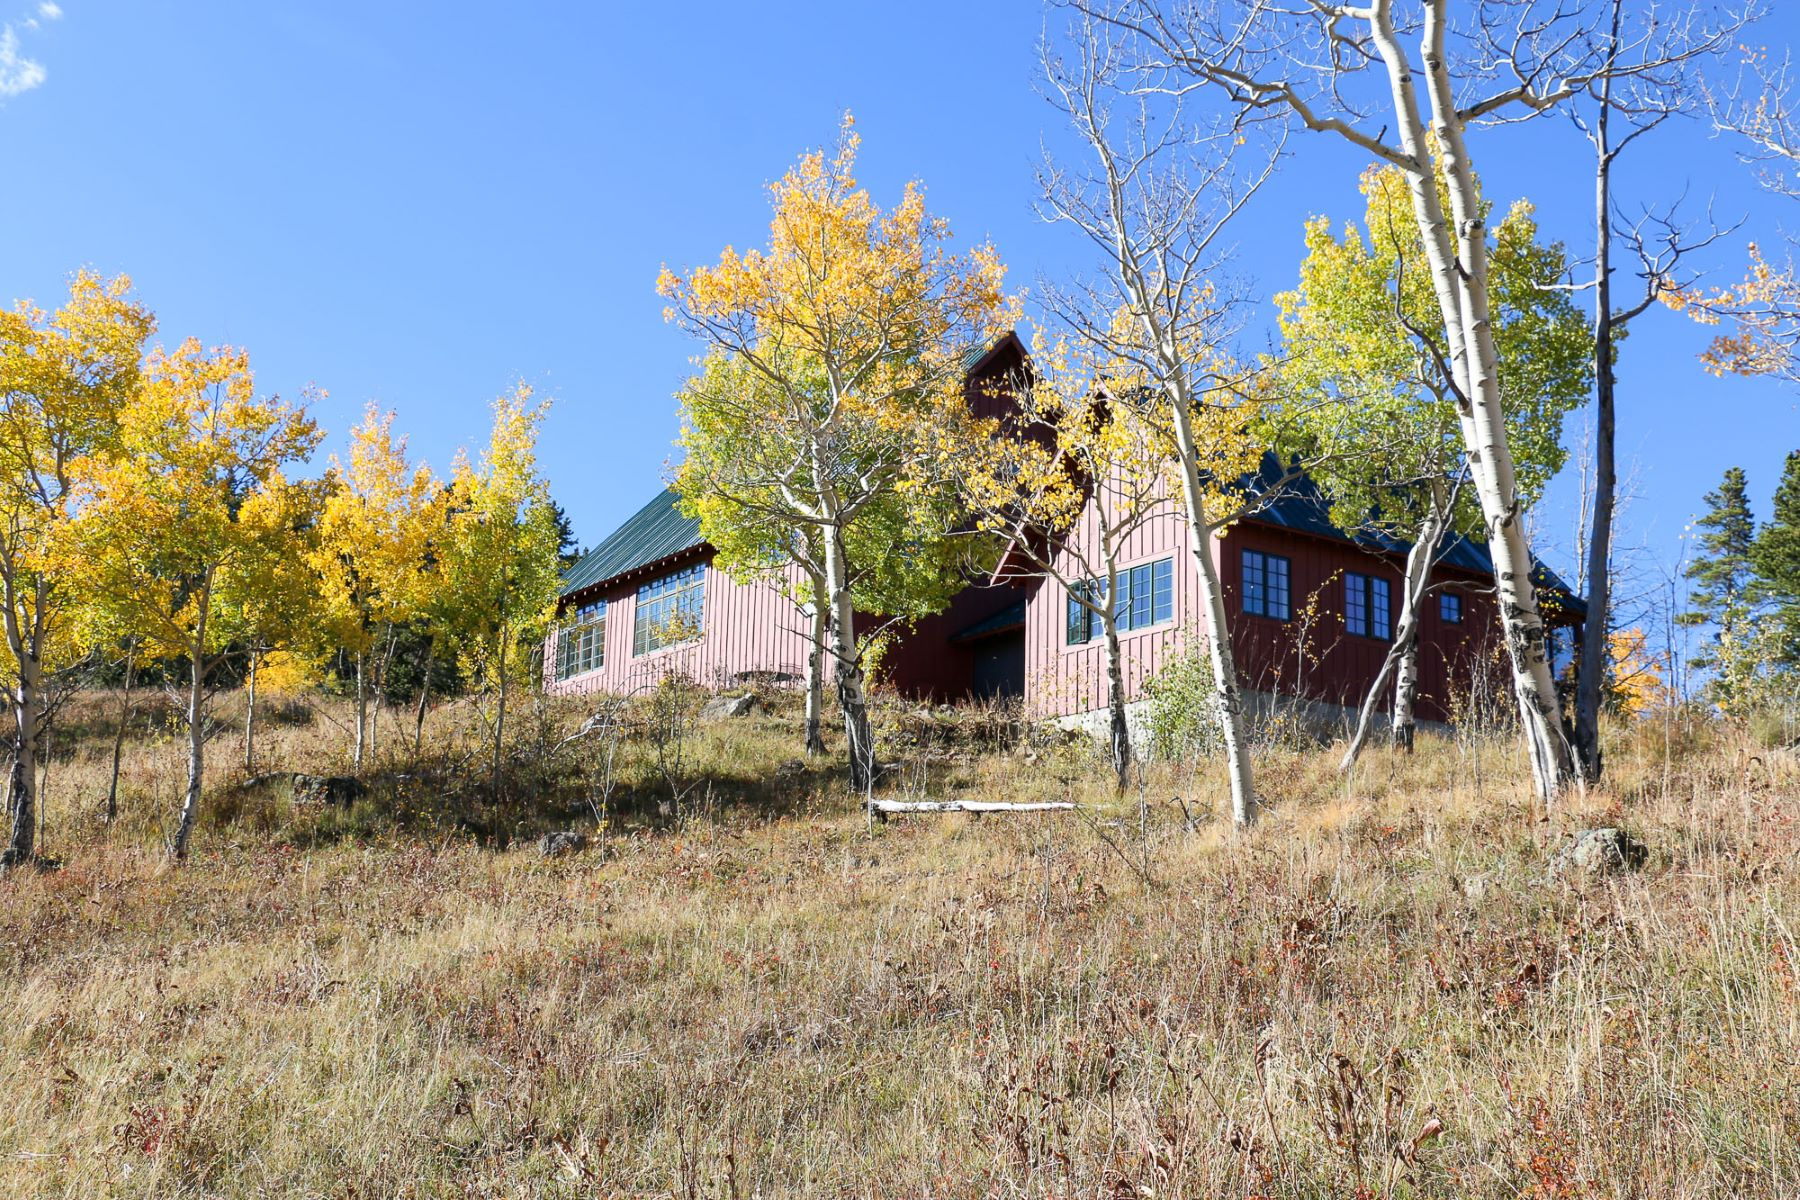 Single Family Home for Sale at Retreat on Red Mountain 475 Oversteeg Gulch, Crested Butte, Colorado, 81224 United States